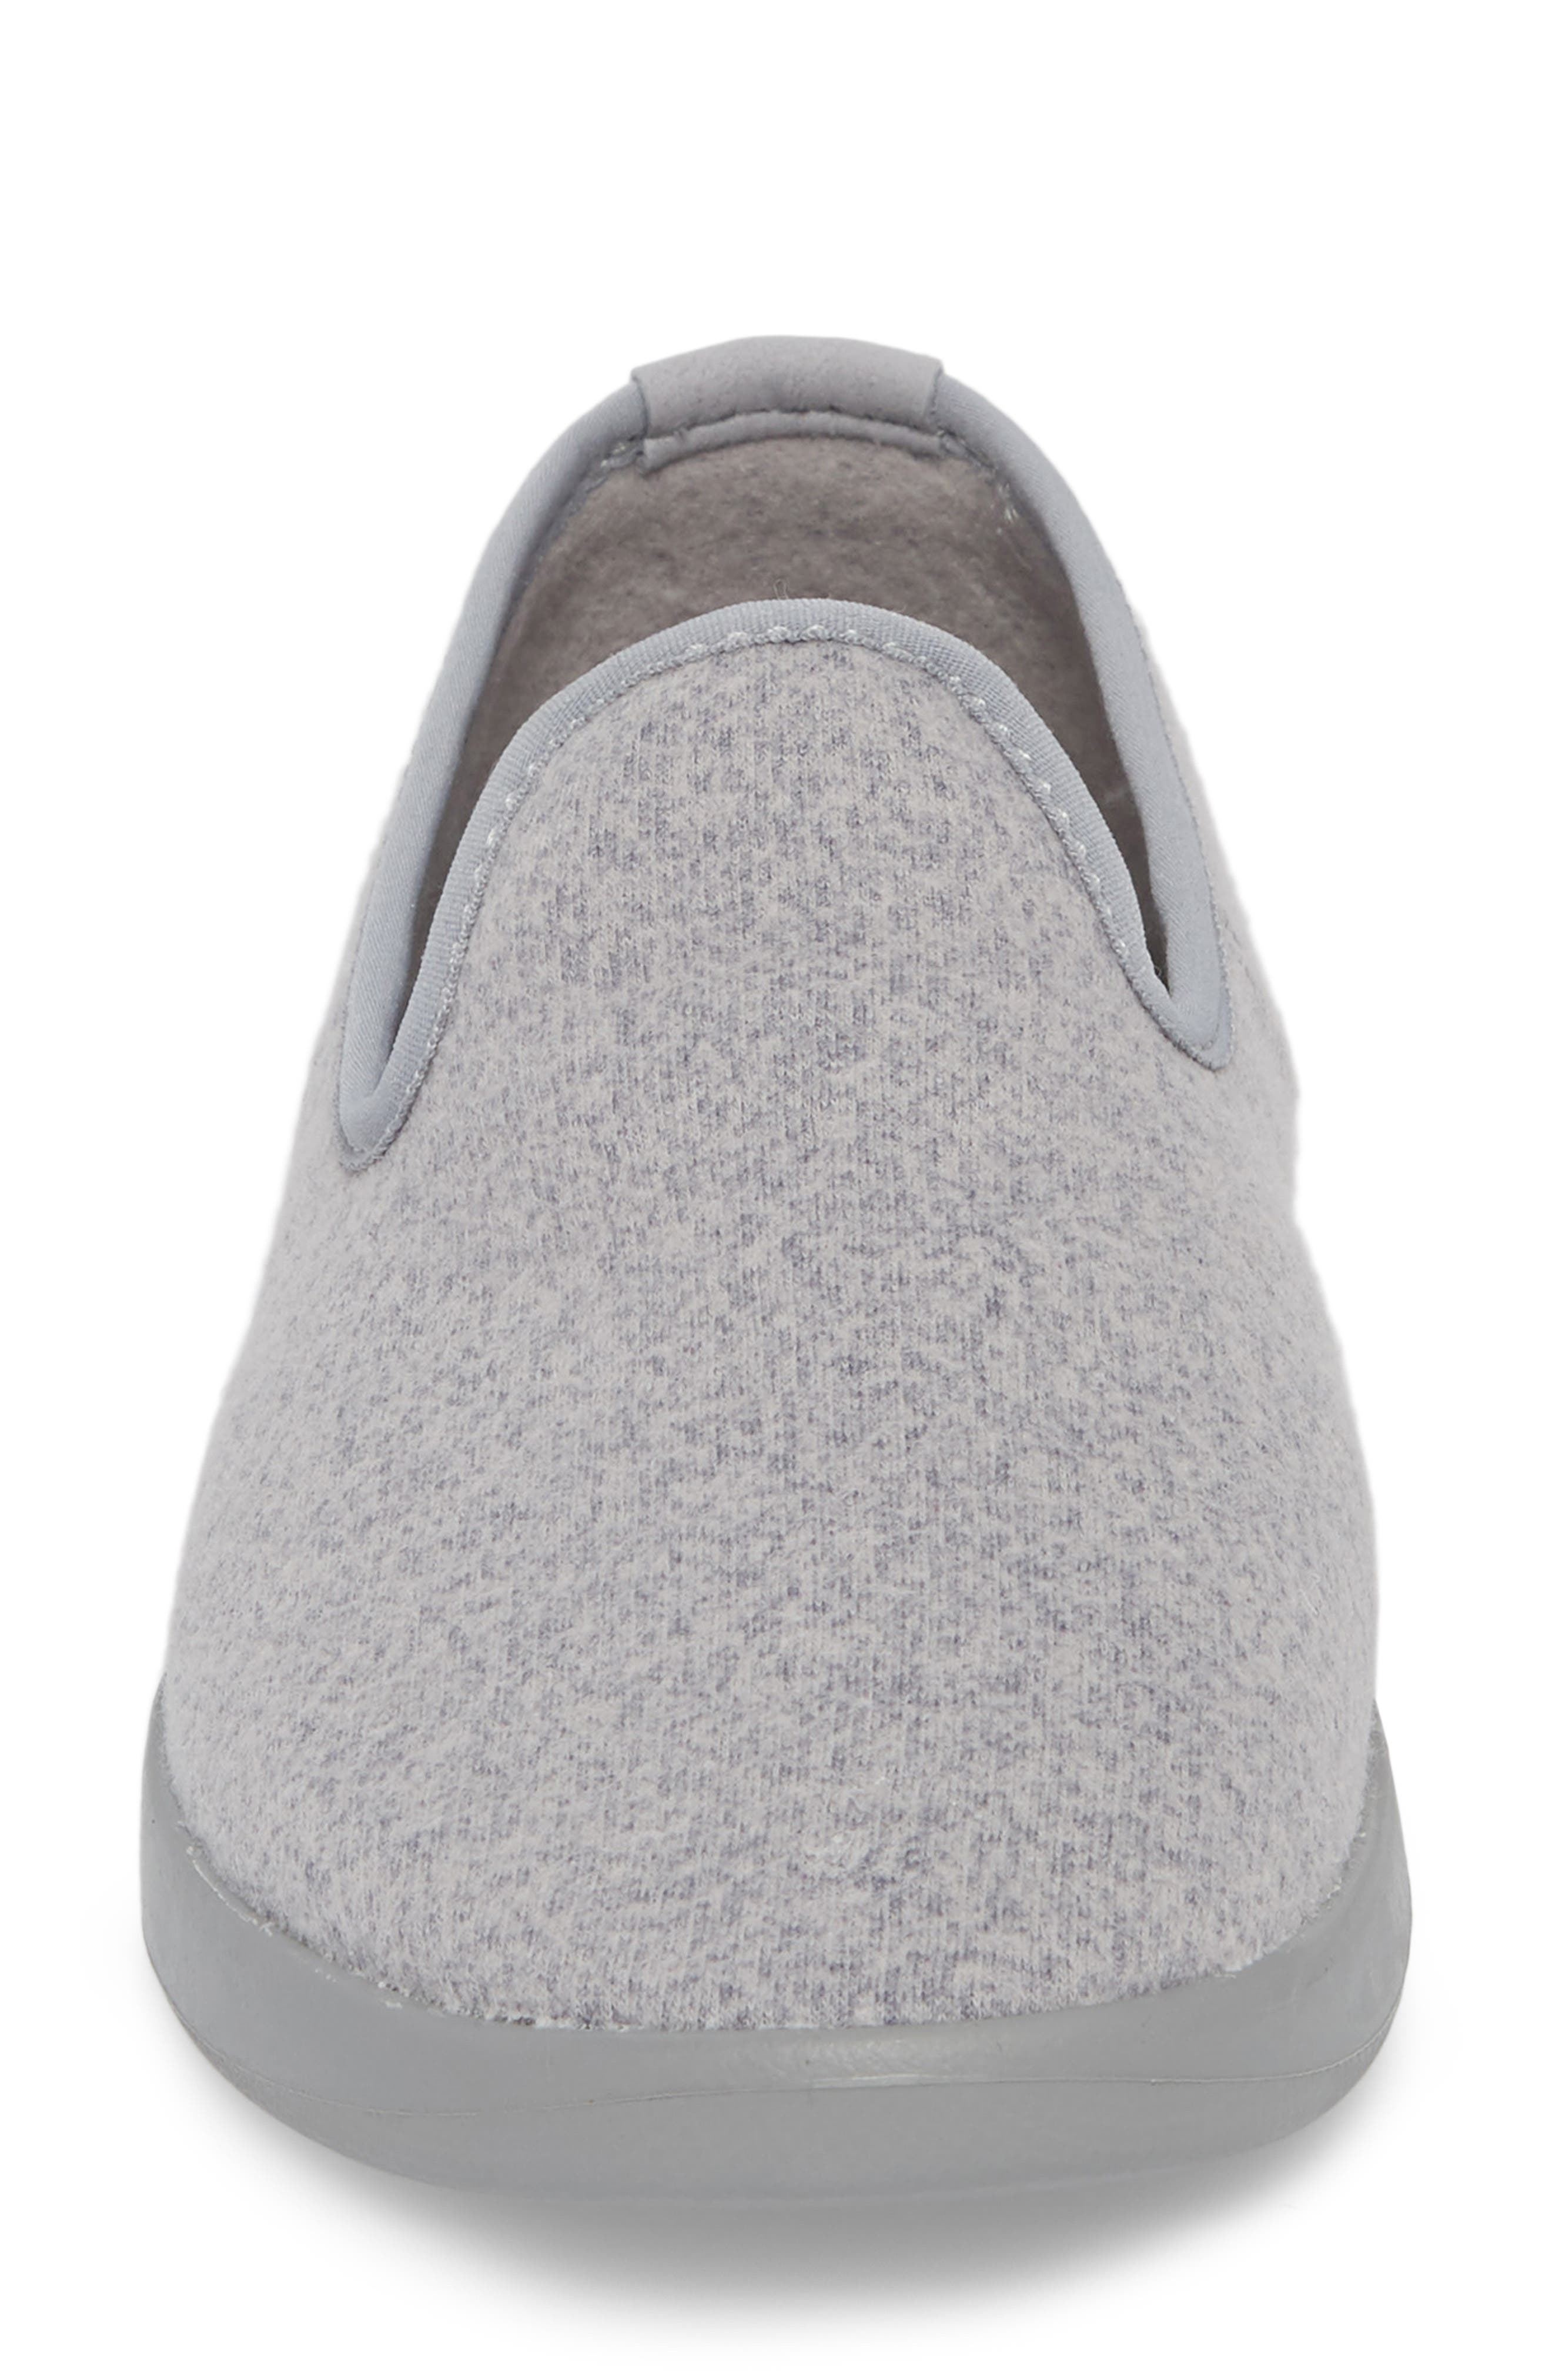 Wool Lounger,                             Alternate thumbnail 4, color,                             020